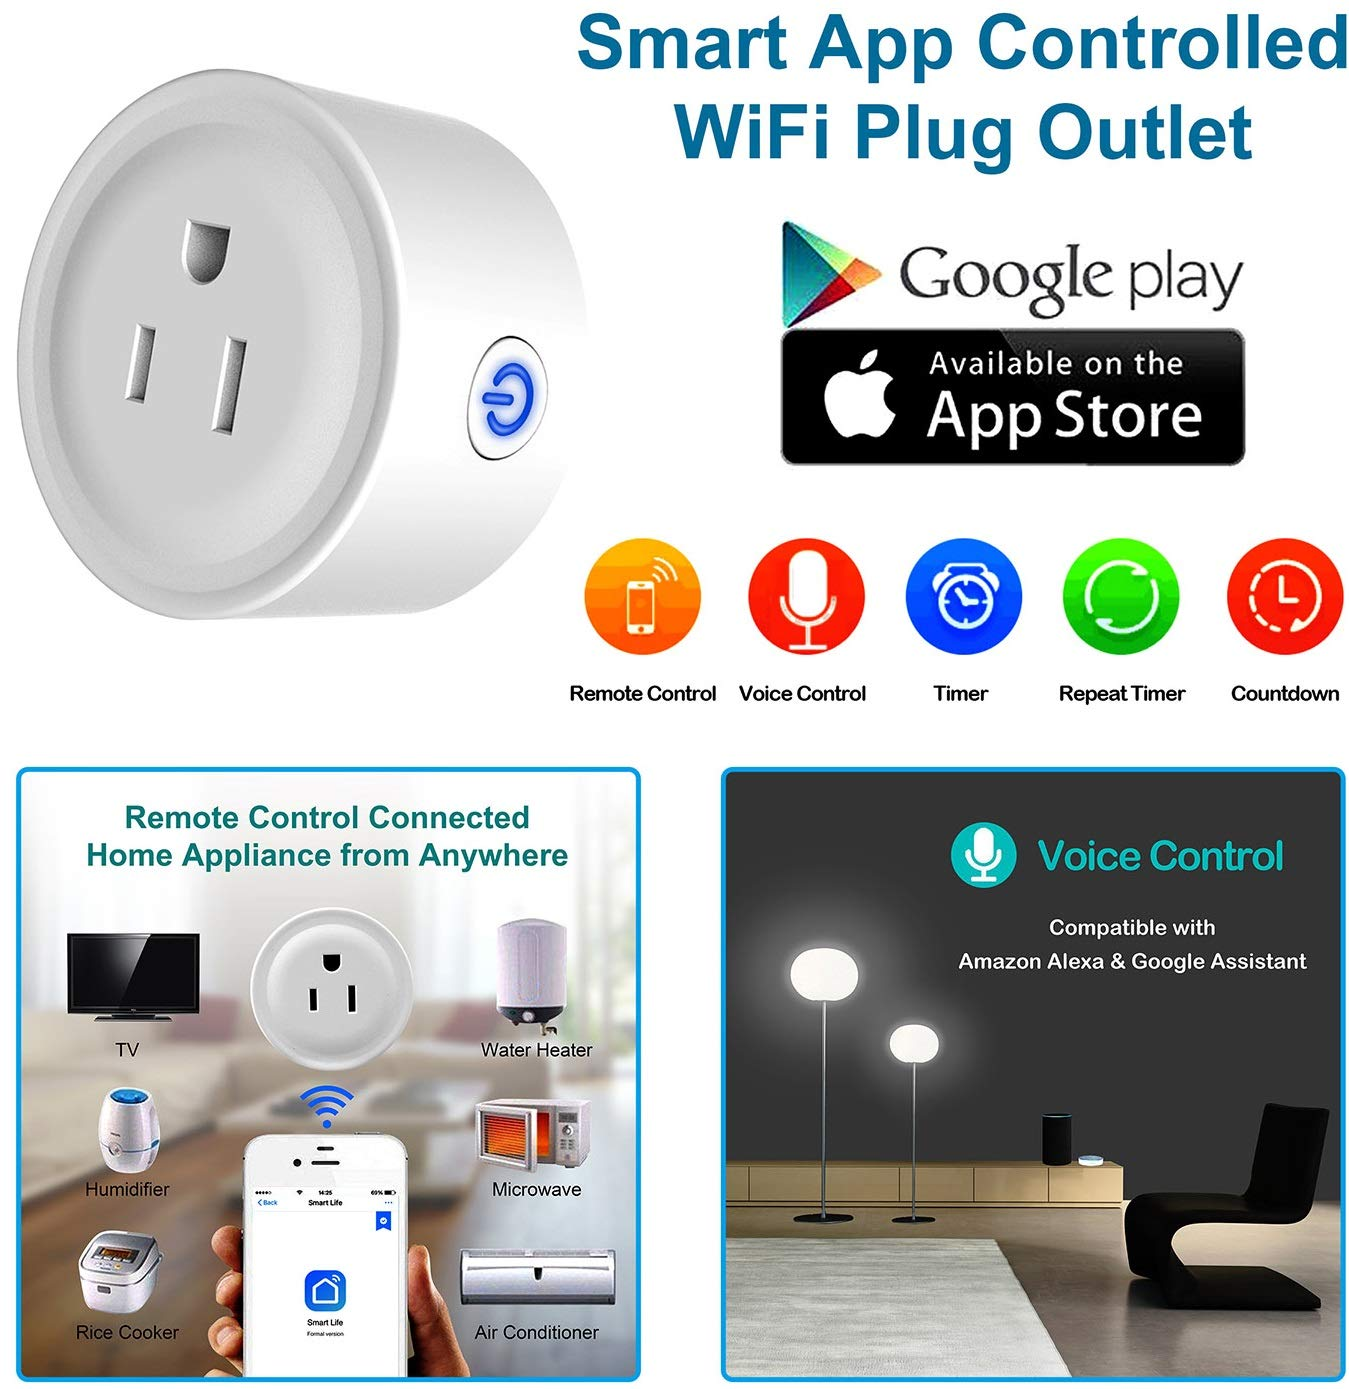 GPCT Smart App Controlled WiFi Plug Outlet. Works W/Alexa/Google Home/IFTTT, Remote Control To Any Connected Home Appliance, No HUB Required, Timer Function, Voice Control Smart Socket- iOS/Android by GPCT